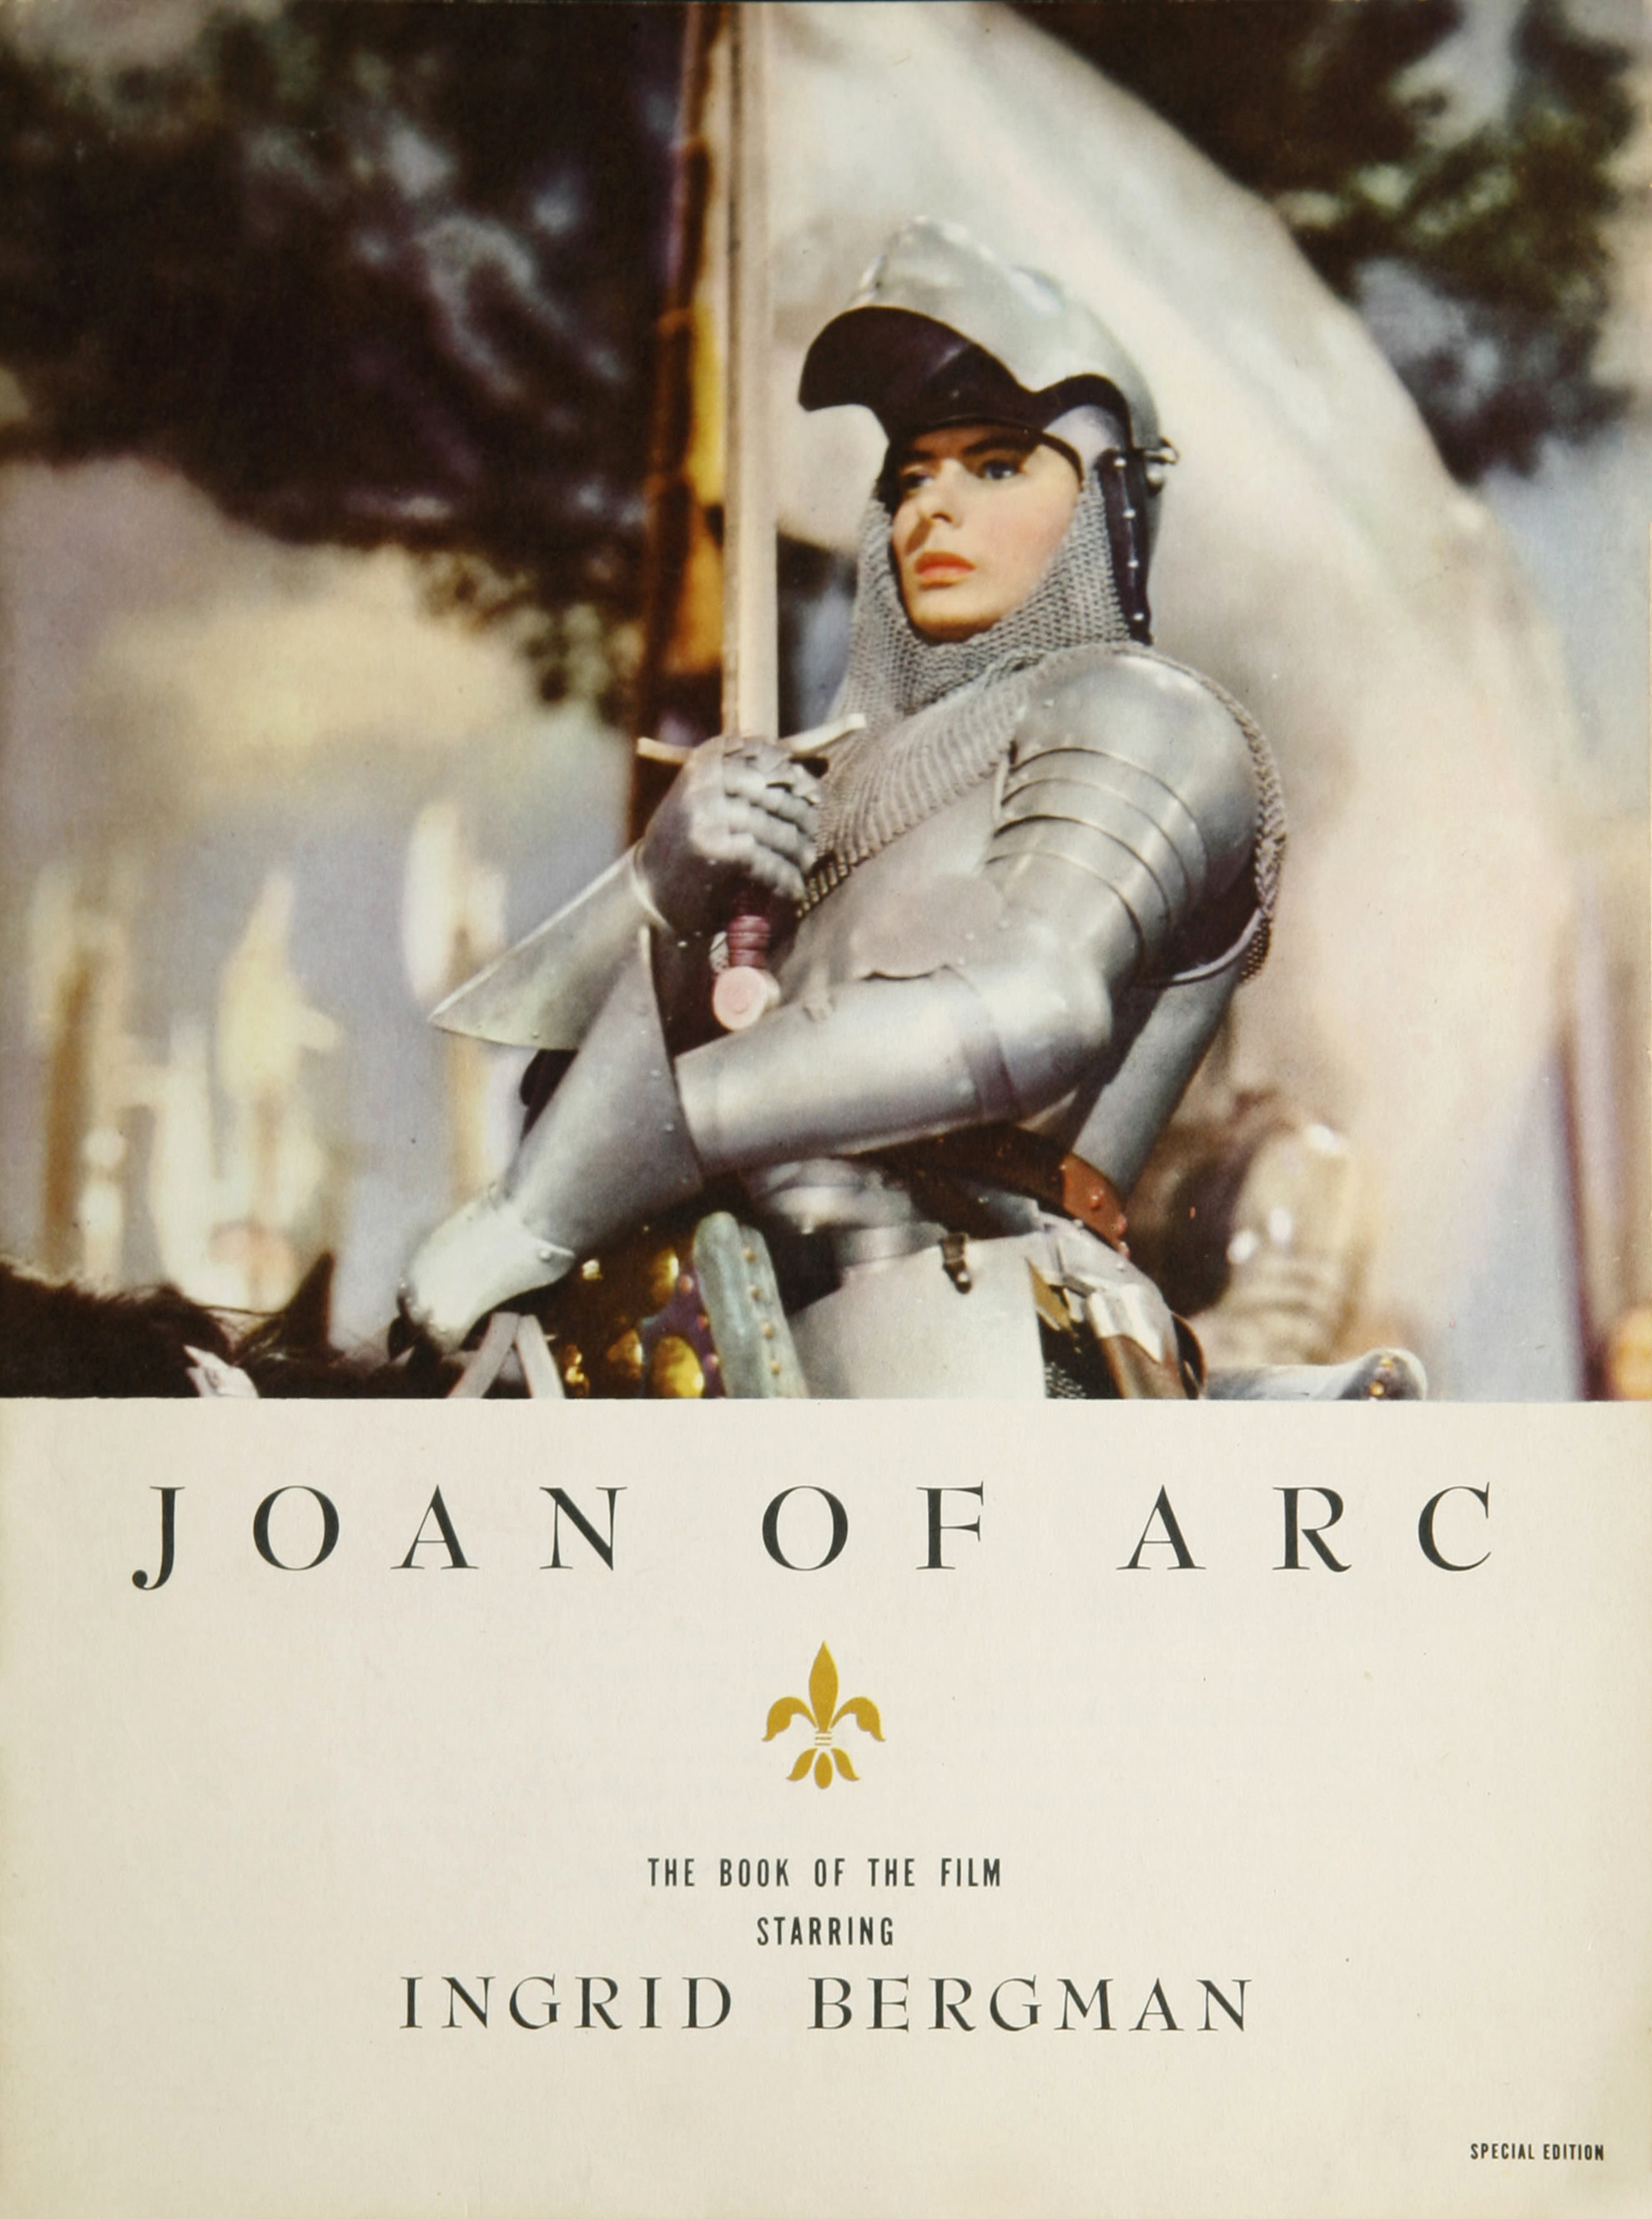 JOAN OF ARC'S DEATH: From Heat Stroke